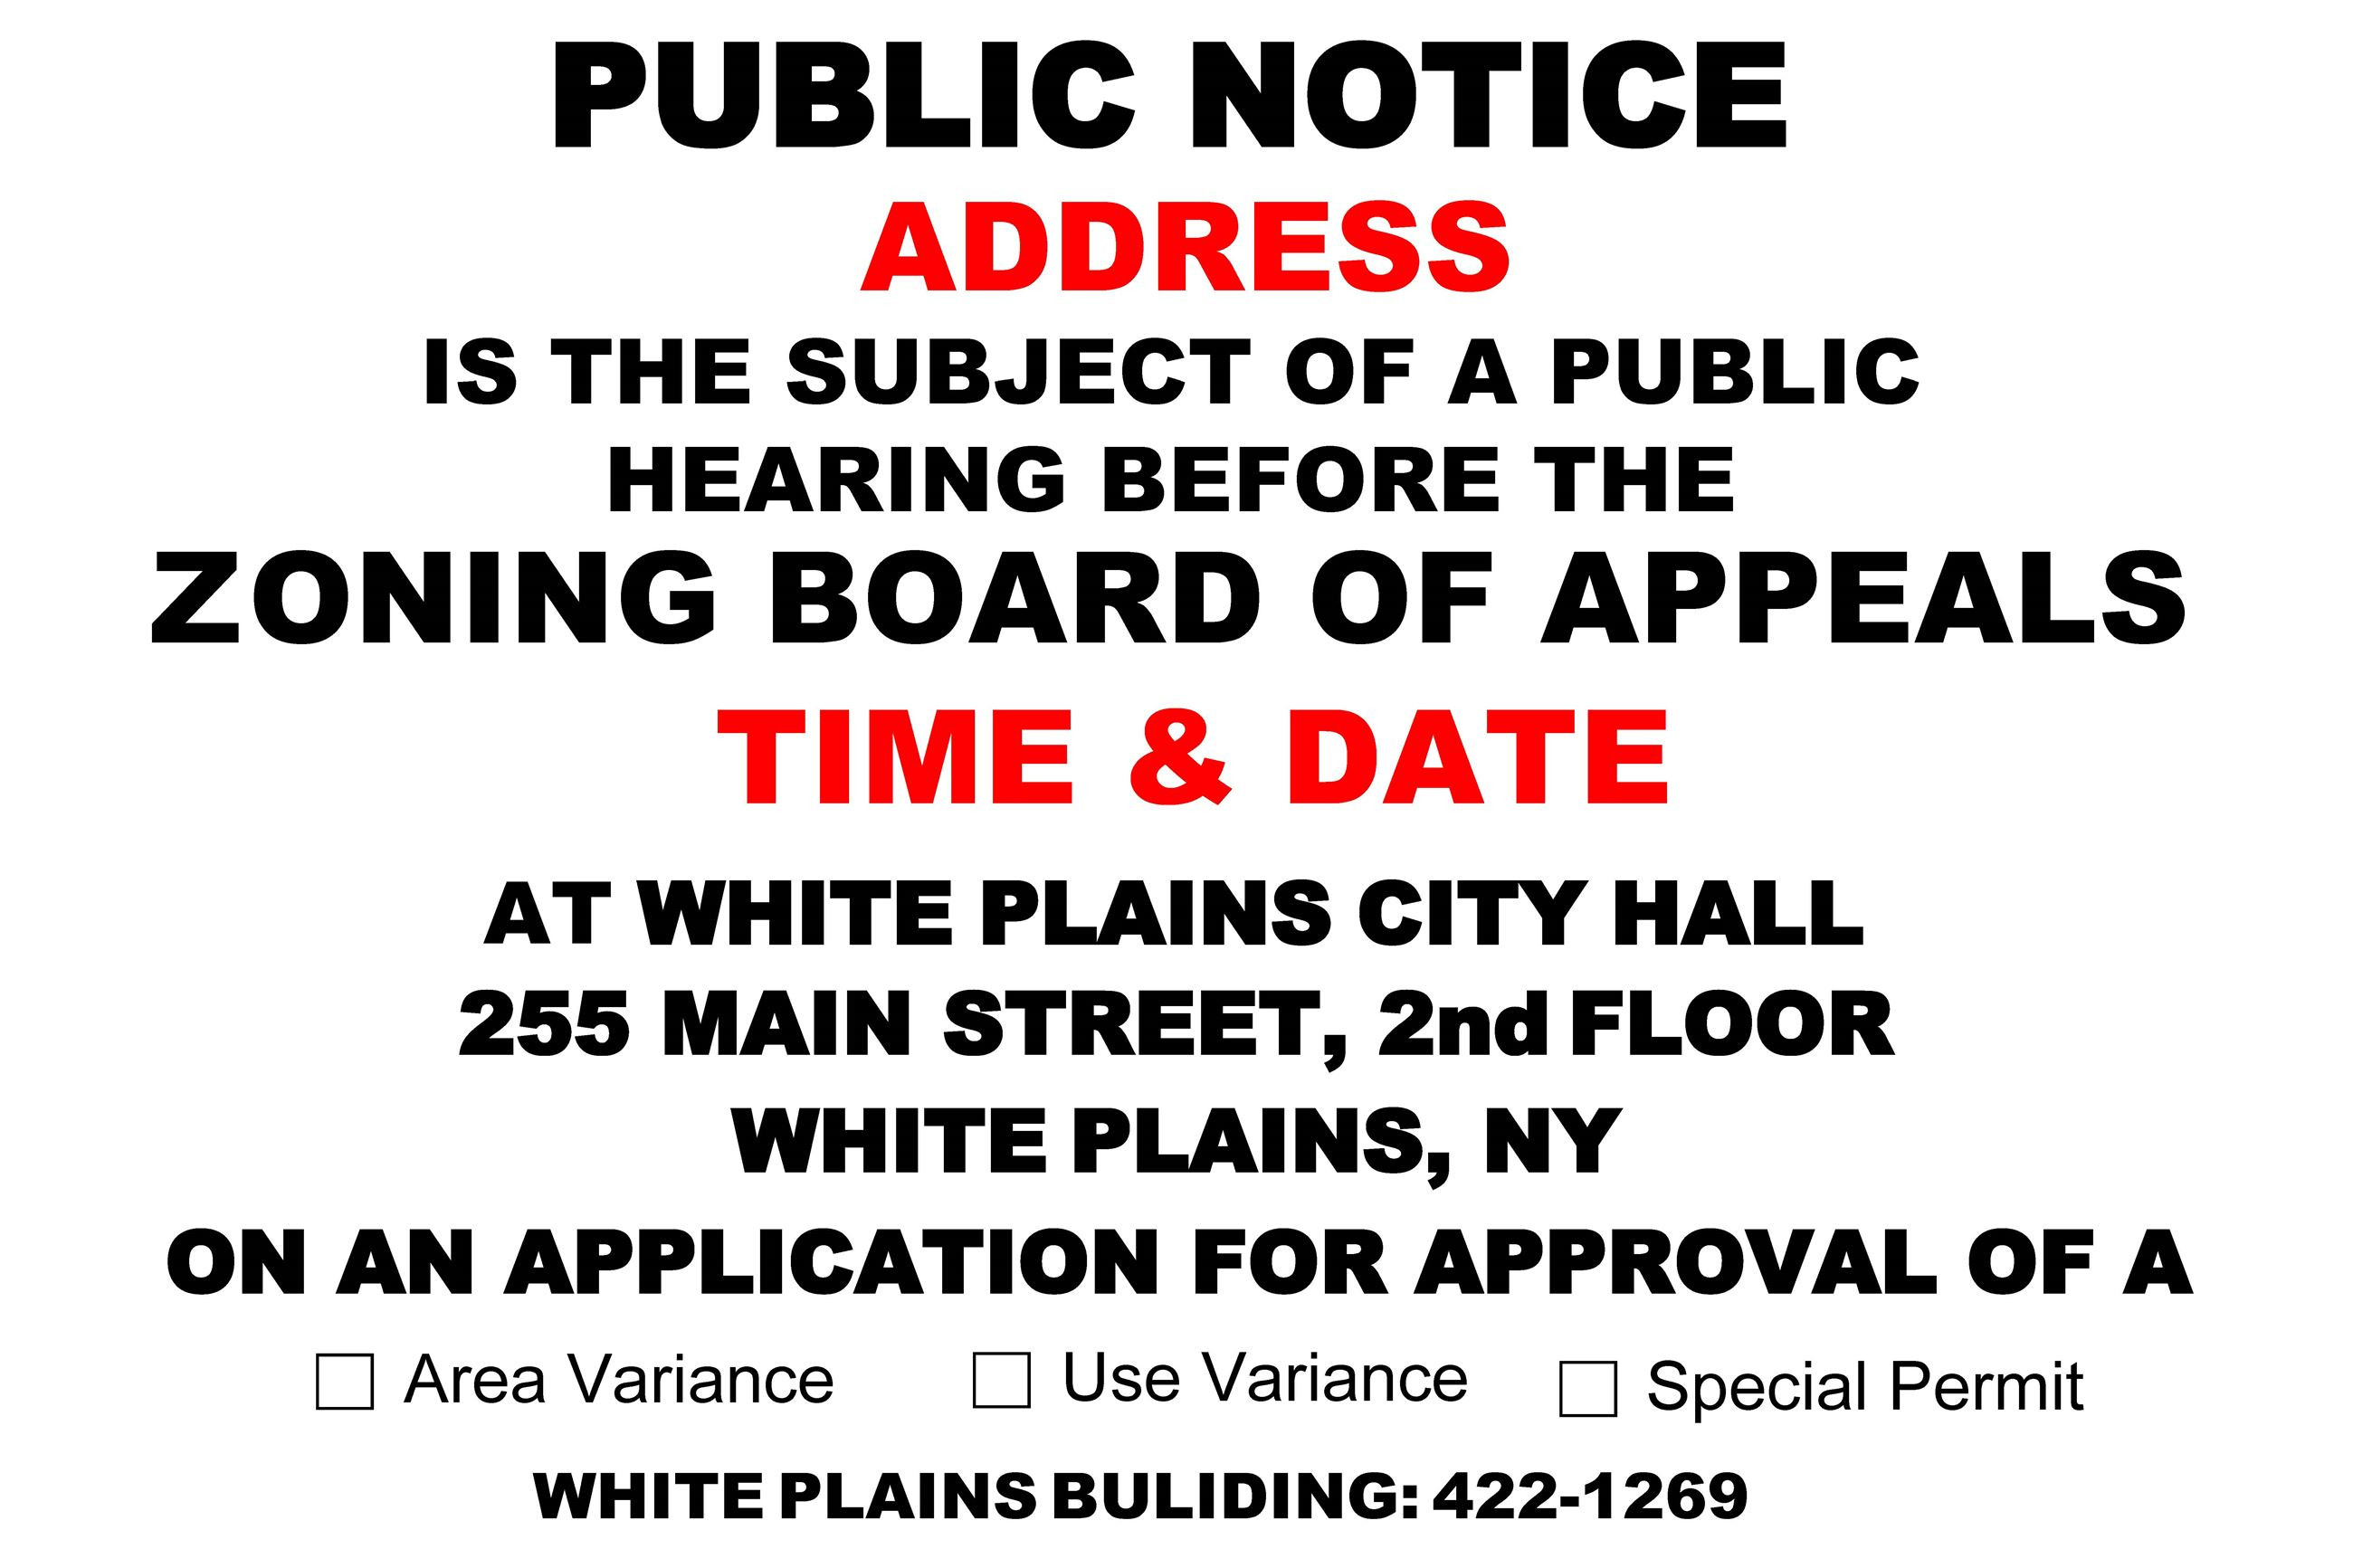 Zoning Board of Appeals PUBLIC NOTICE Fillable Sign